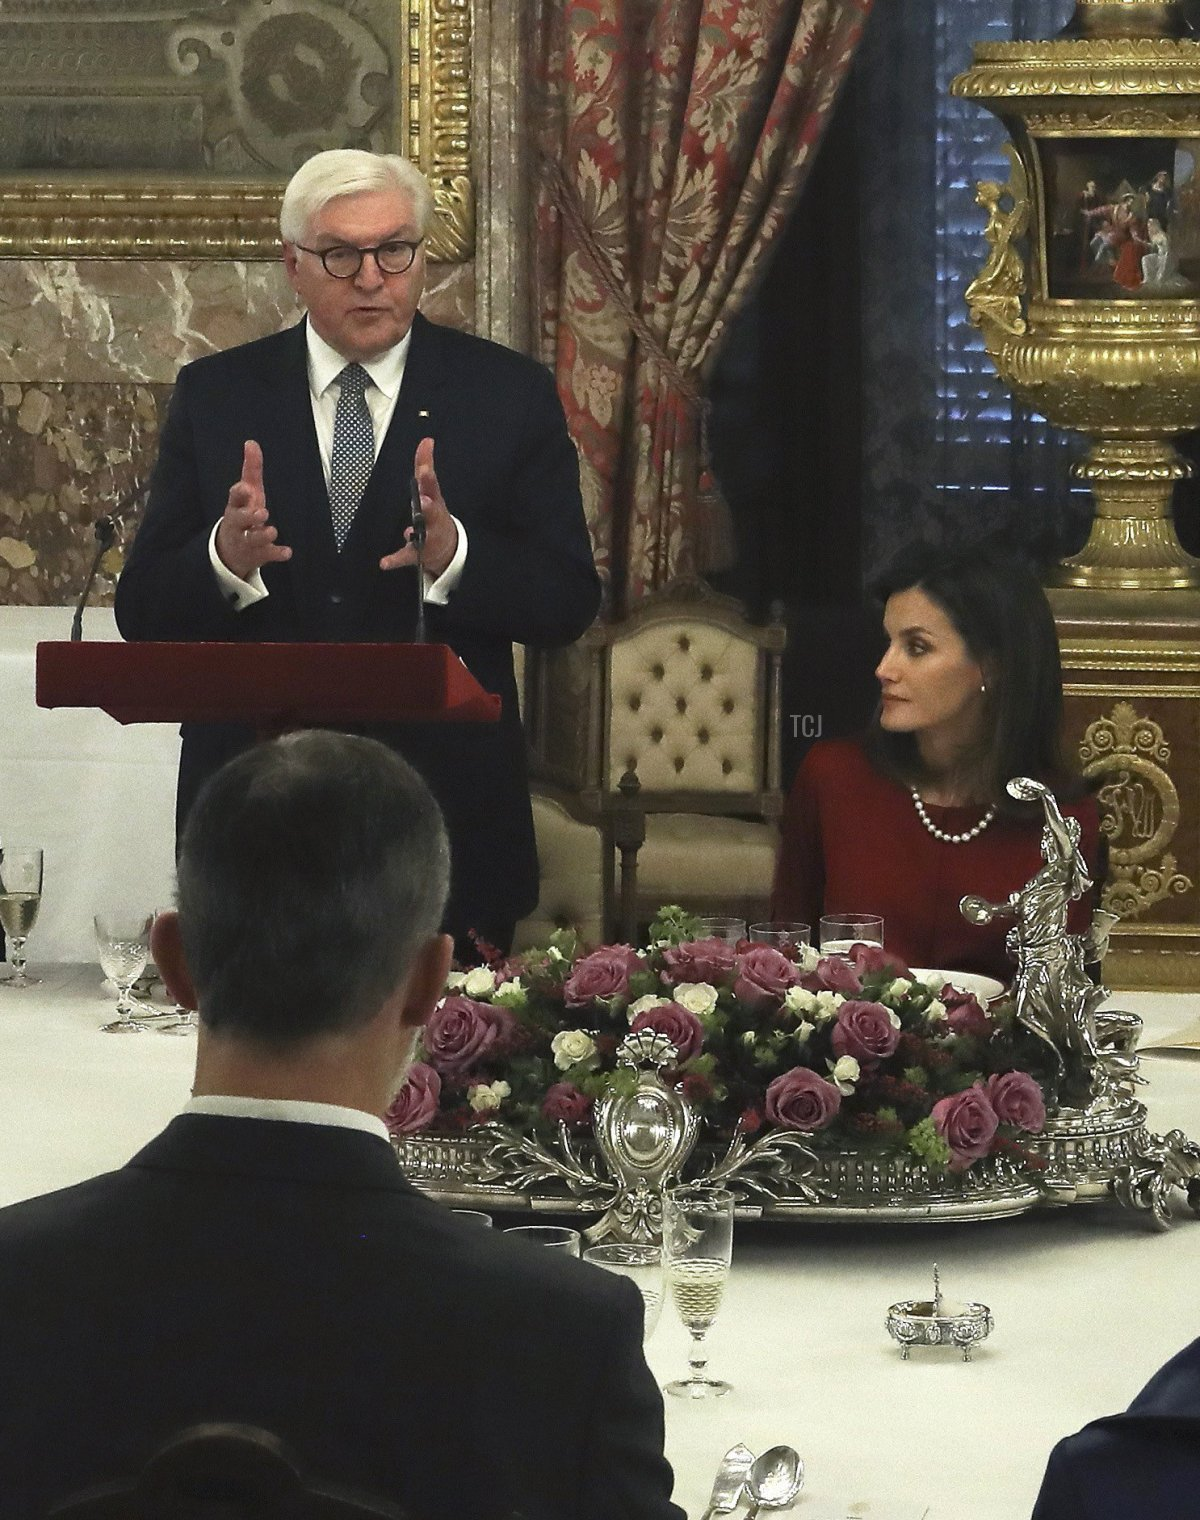 German President Frank-Walter Steinmeier (L) gives a speech next to Spain´s King Felipe VI and Queen Letizia during a lunch at the Royal Palace in Madrid on October 24, 2018